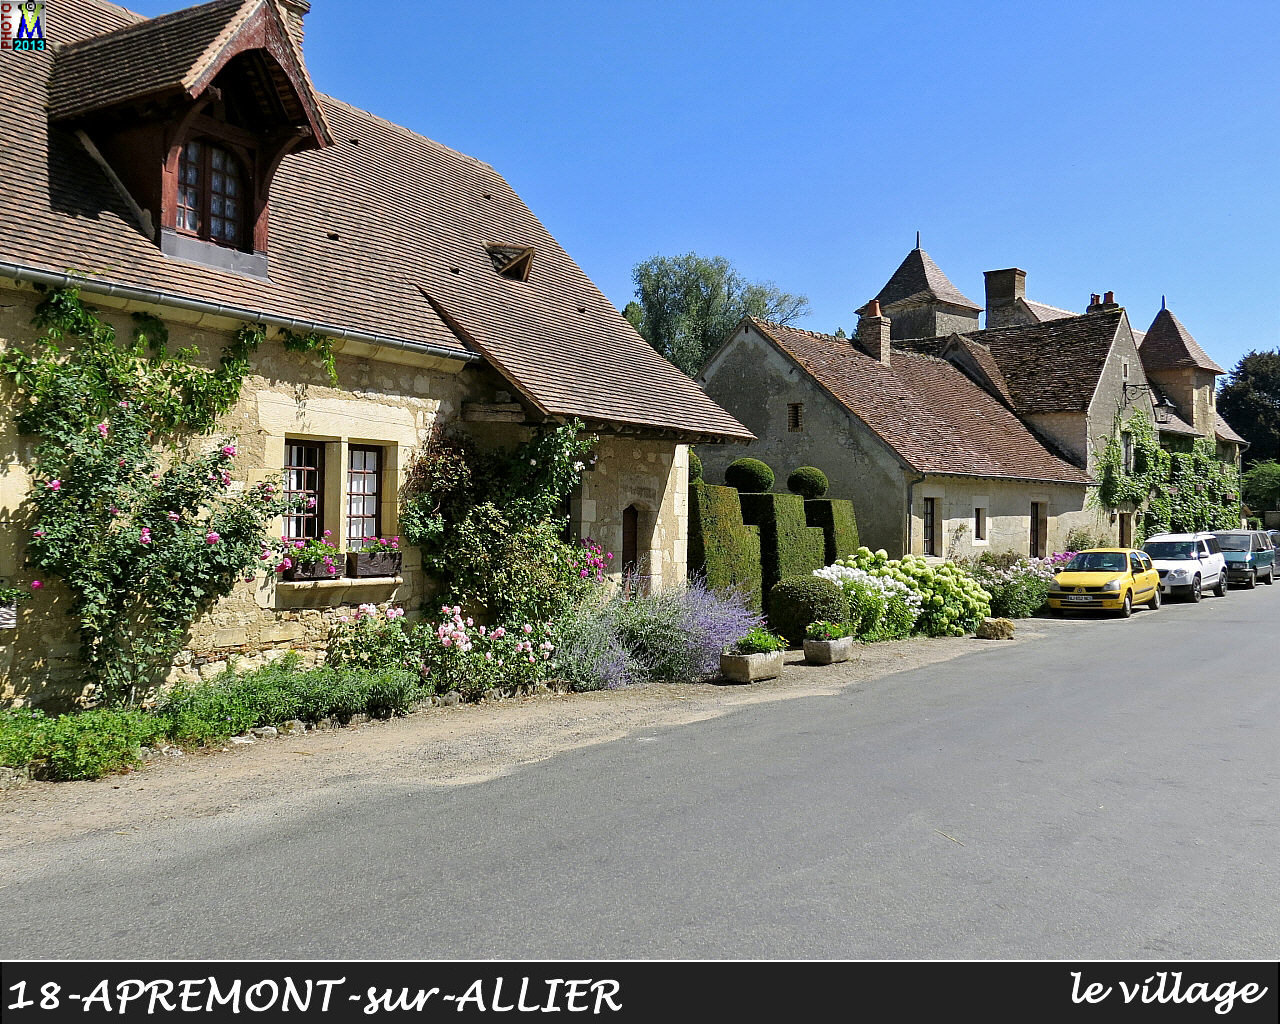 18APREMONT-ALLIER_village_126.jpg